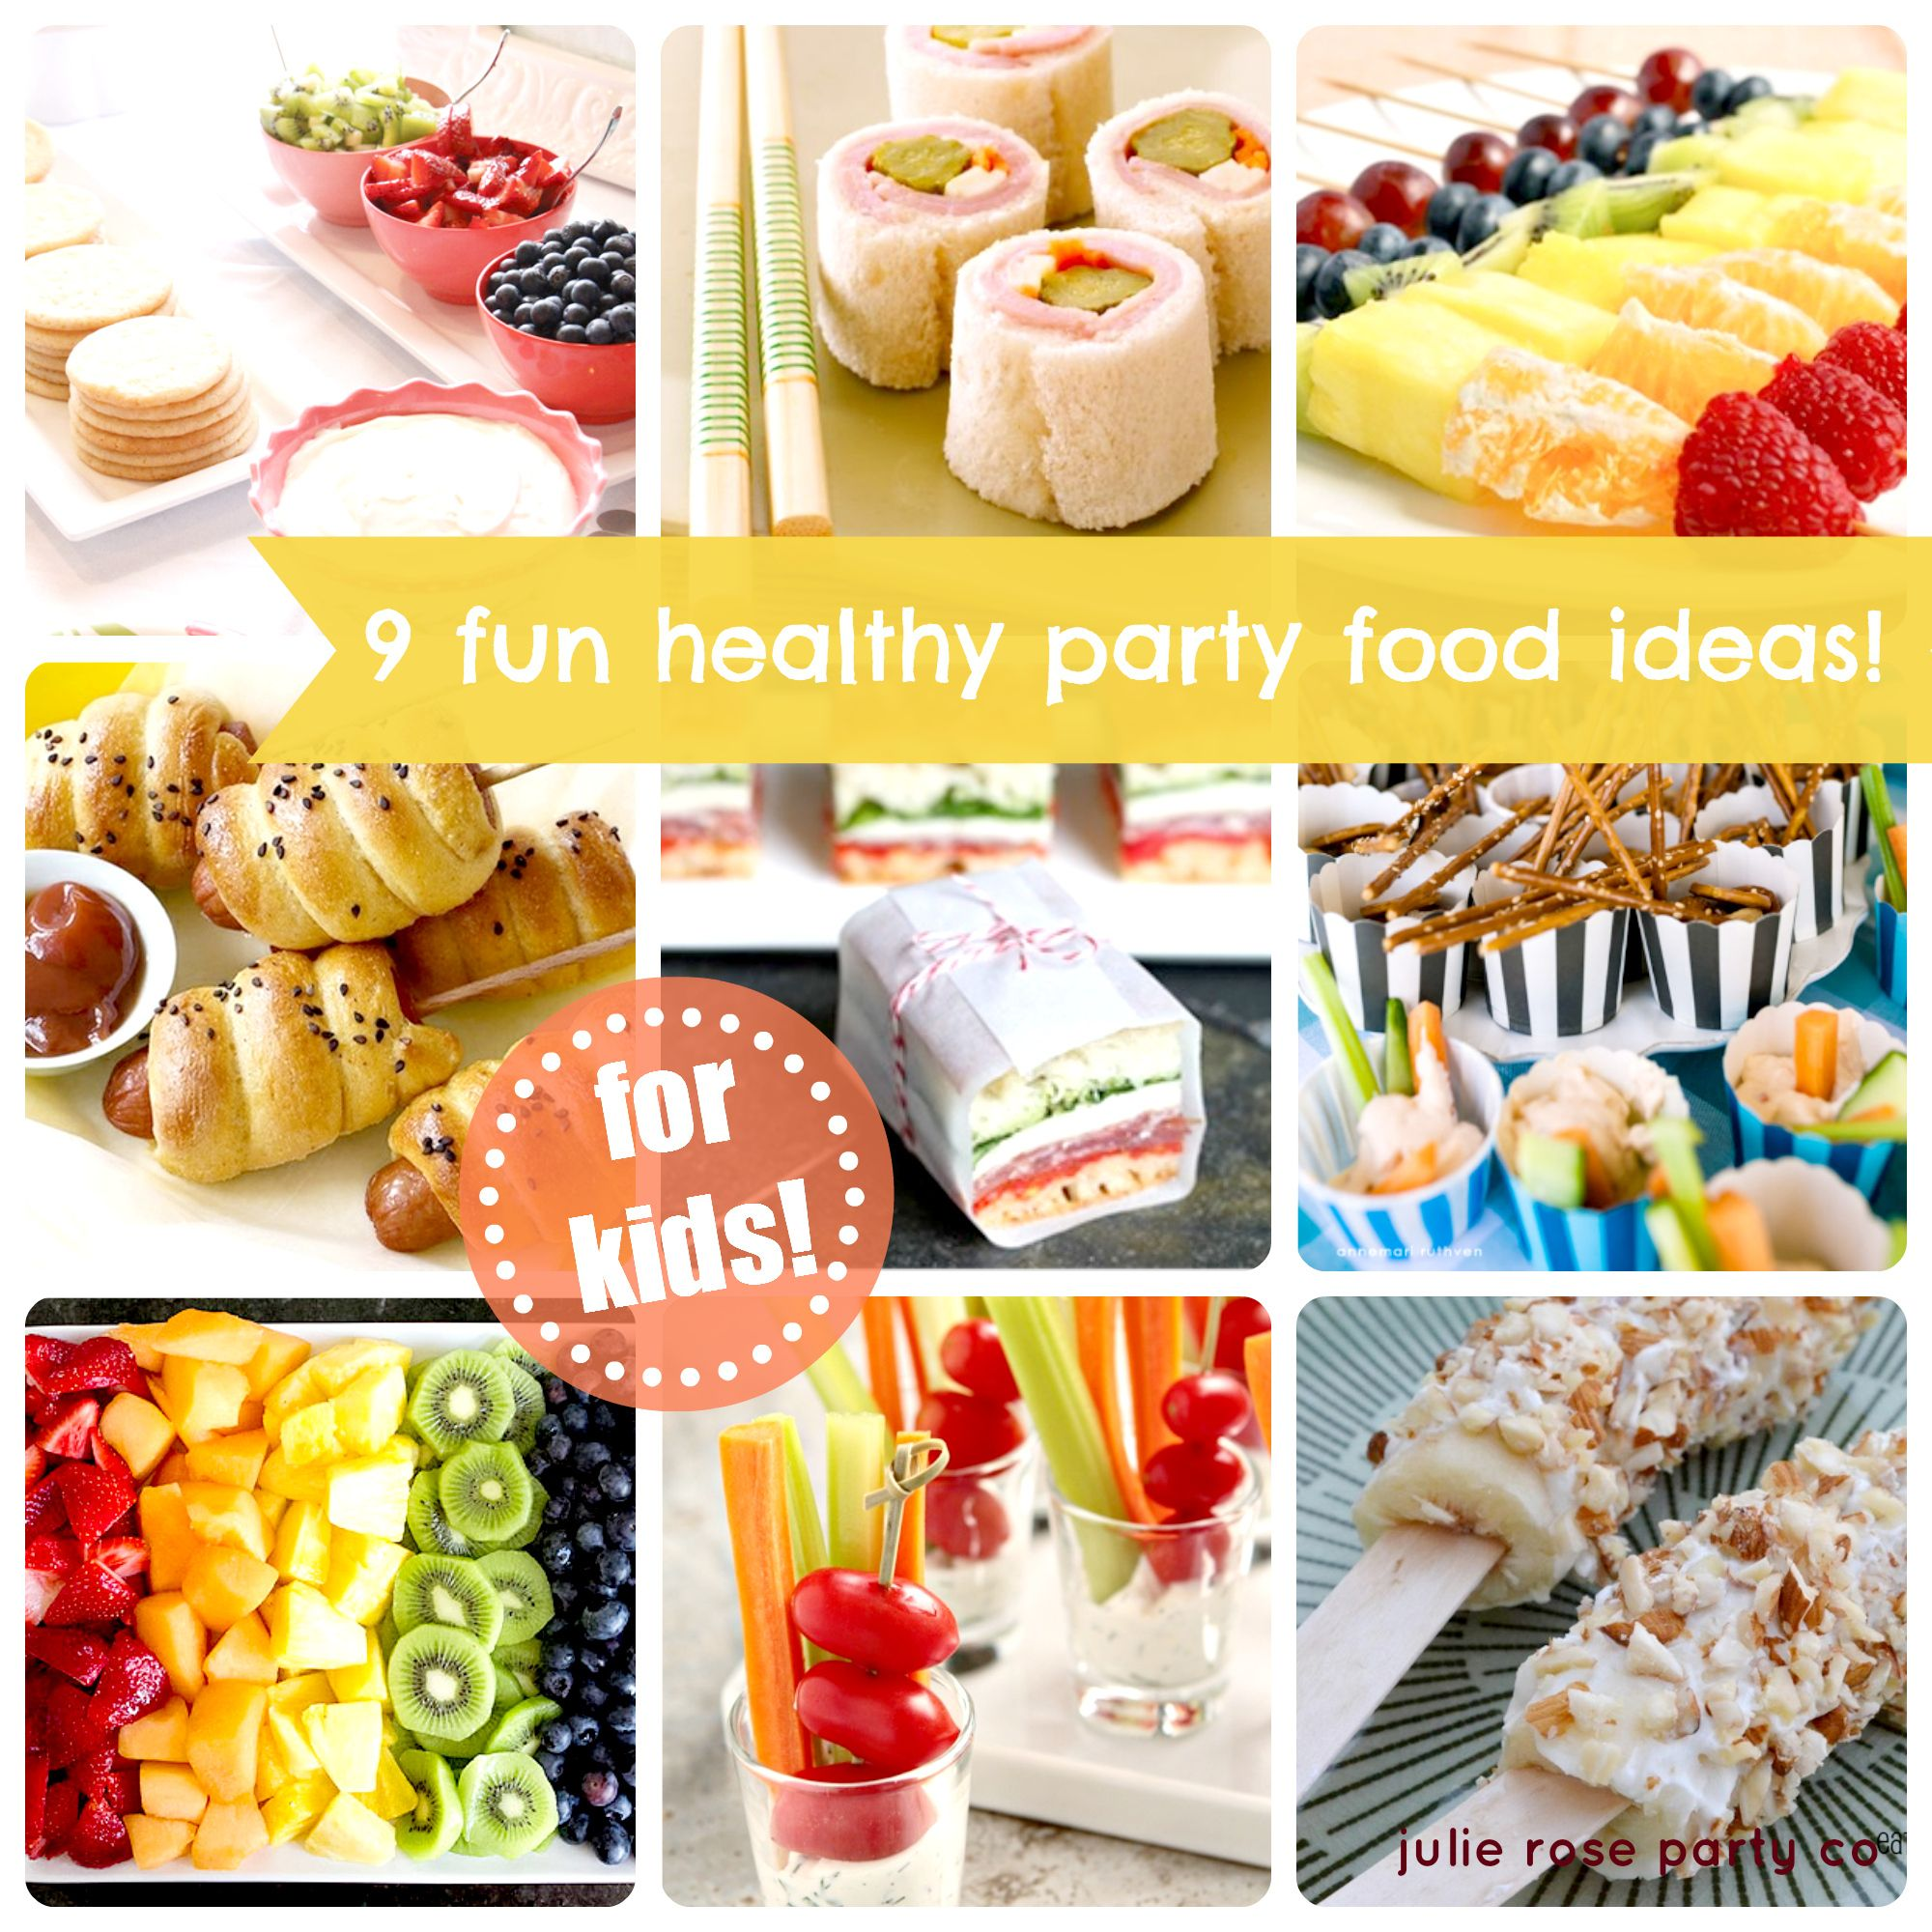 9 fun and healthy party food ideas {kids} Food, Party